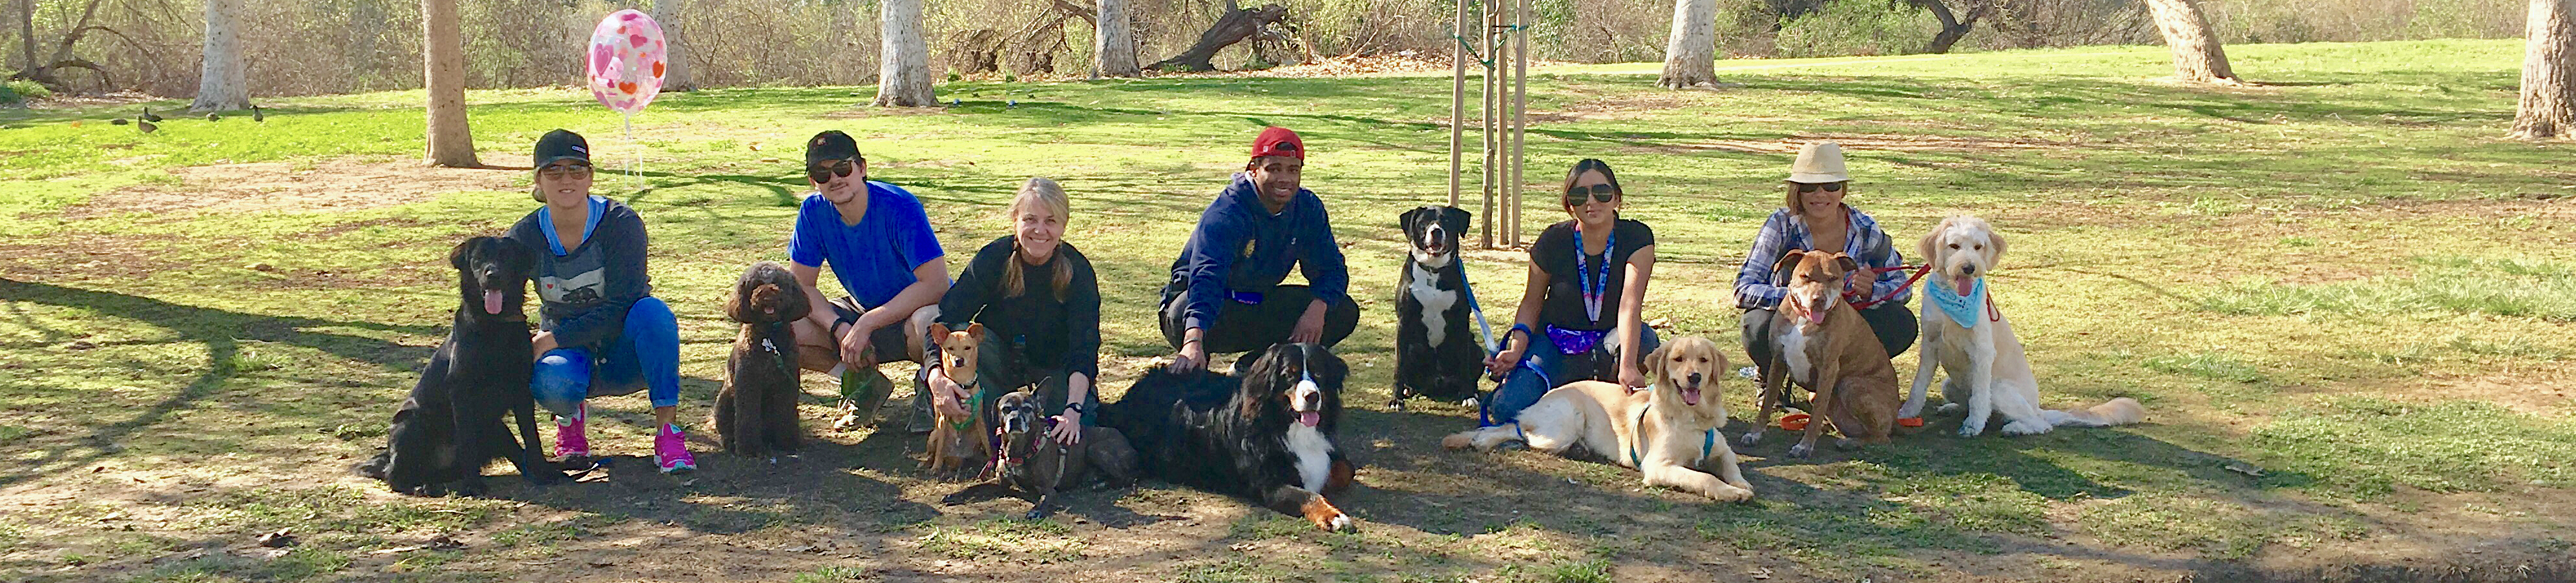 pack hikes, dog hikes, hiking with dogs, balboa park, dog hikers